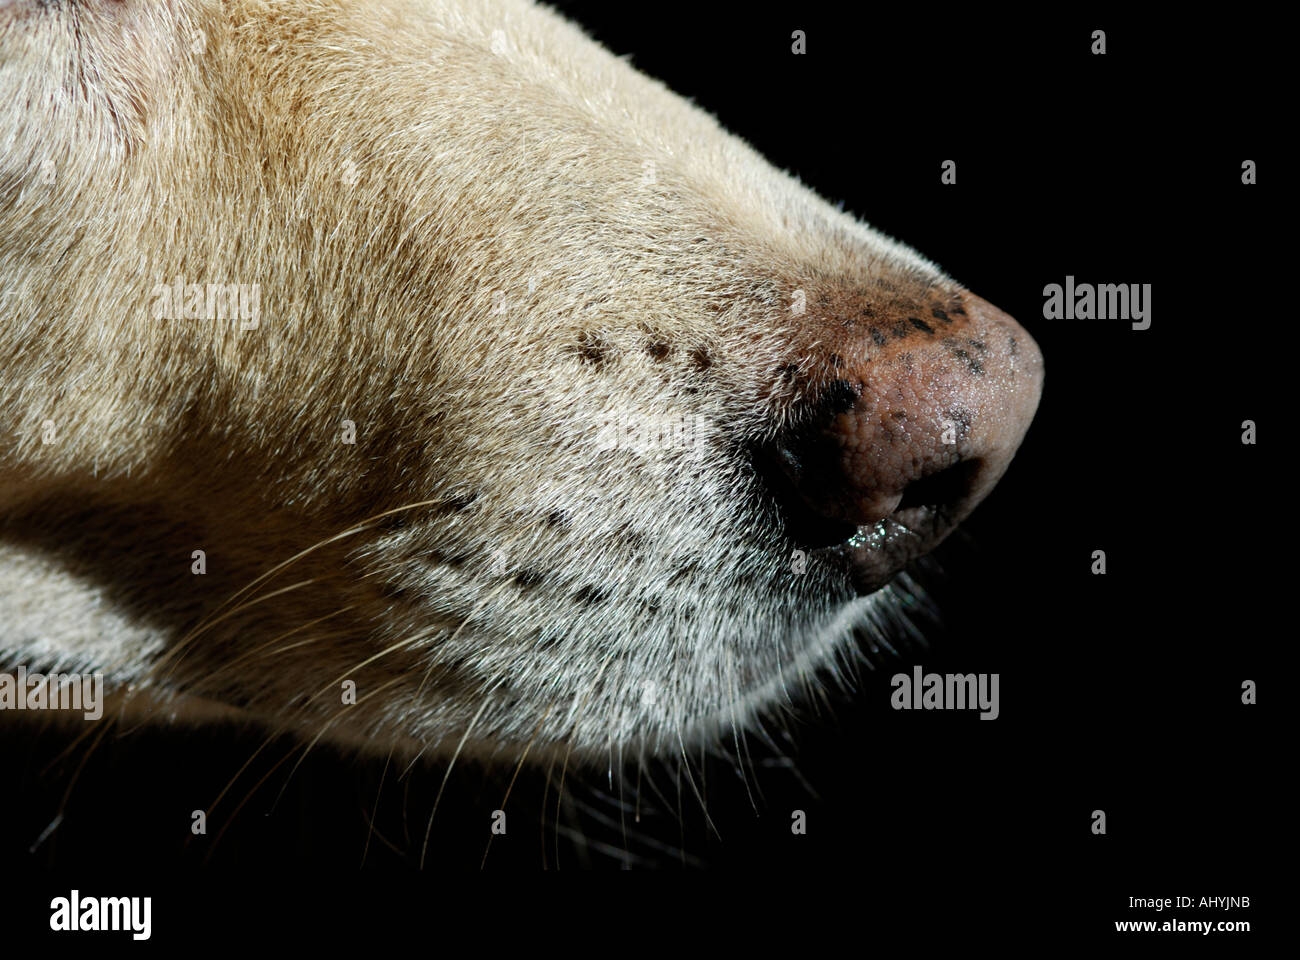 Dog's nose close-up - Stock Image